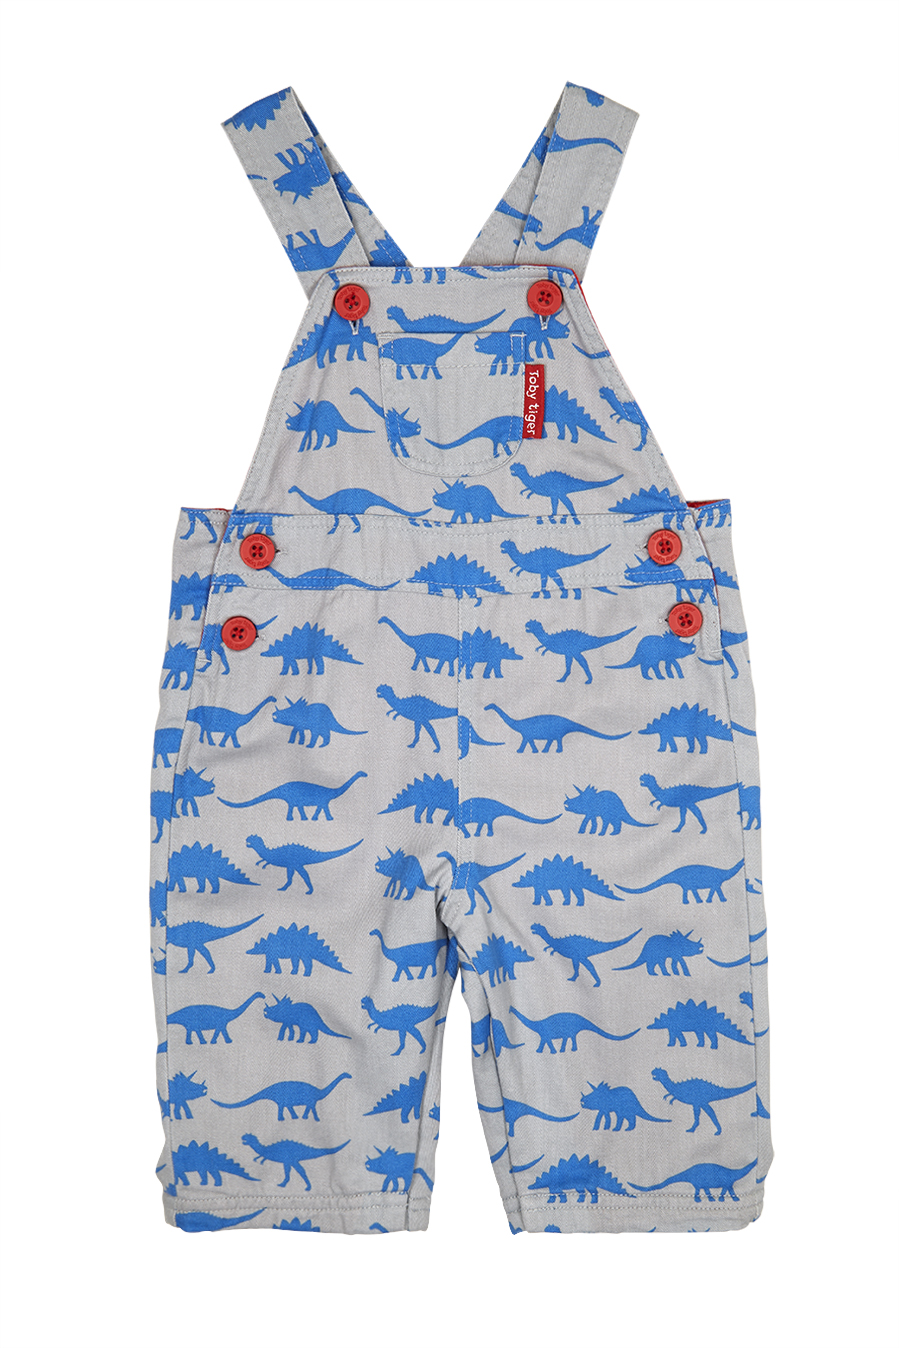 Toby Tiger- children's clothing- dungarees